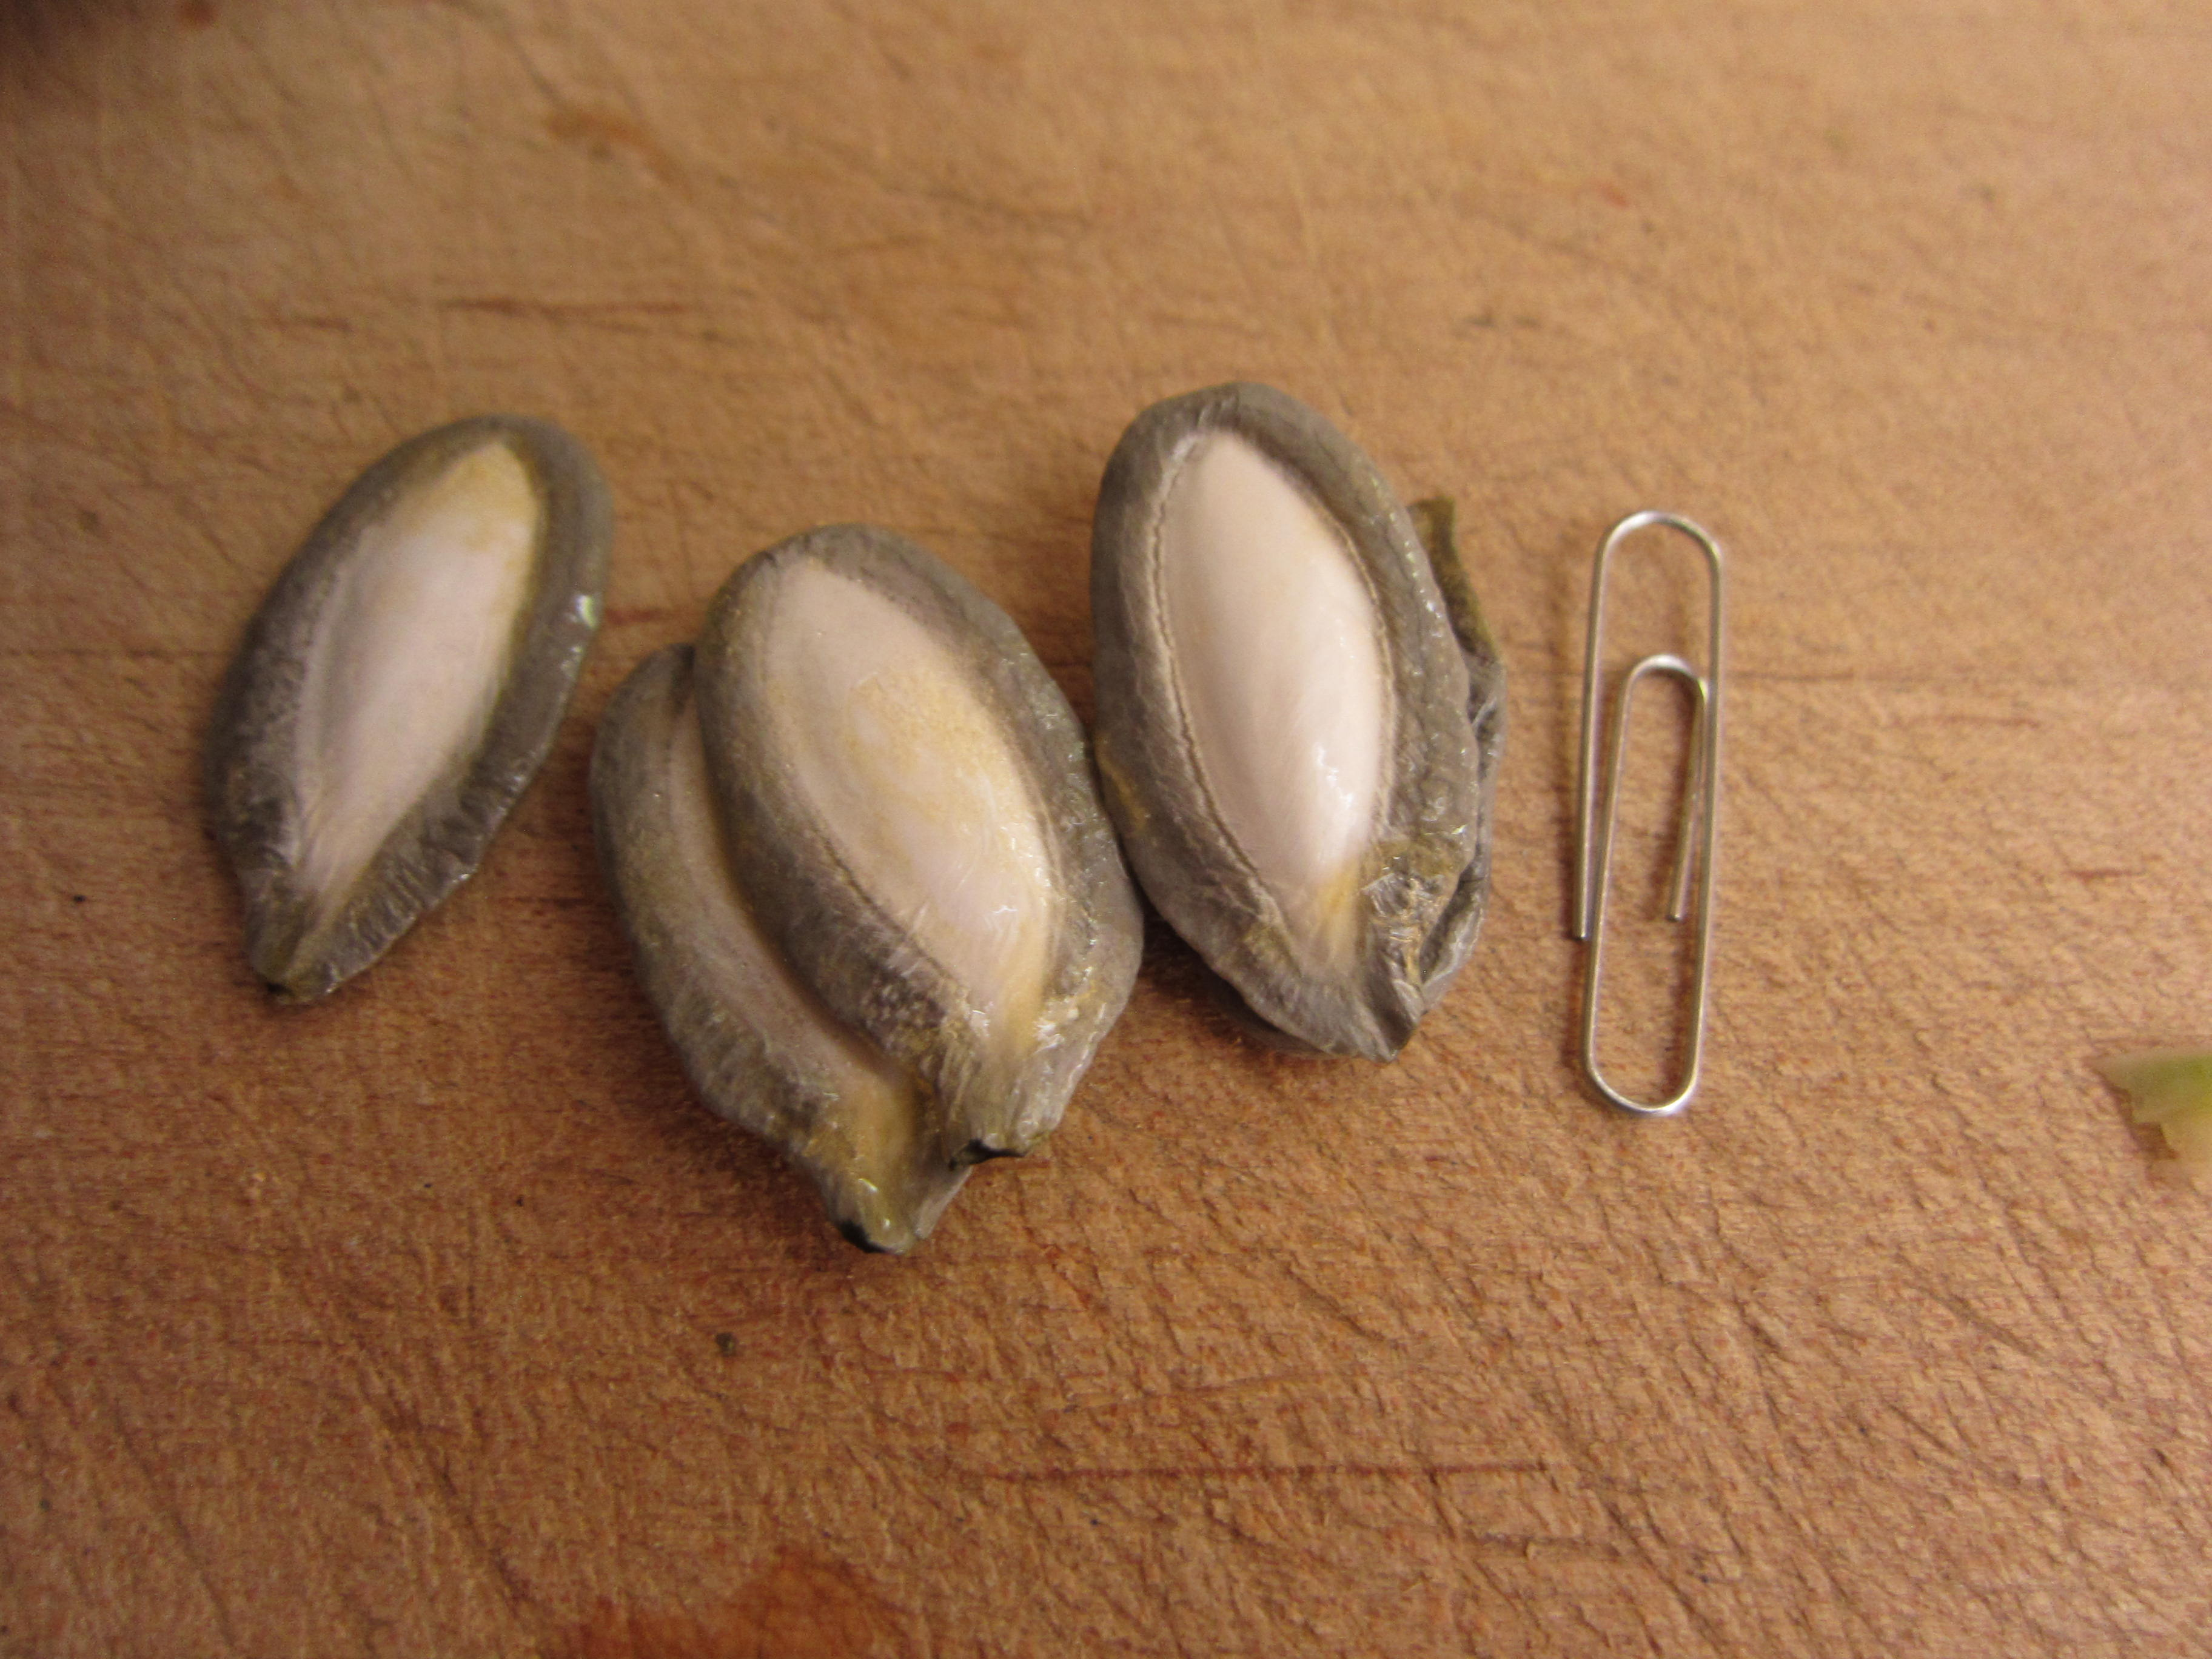 The seeds are huge, the size of a standard paper clip. They tower over regular pumpkin seeds.